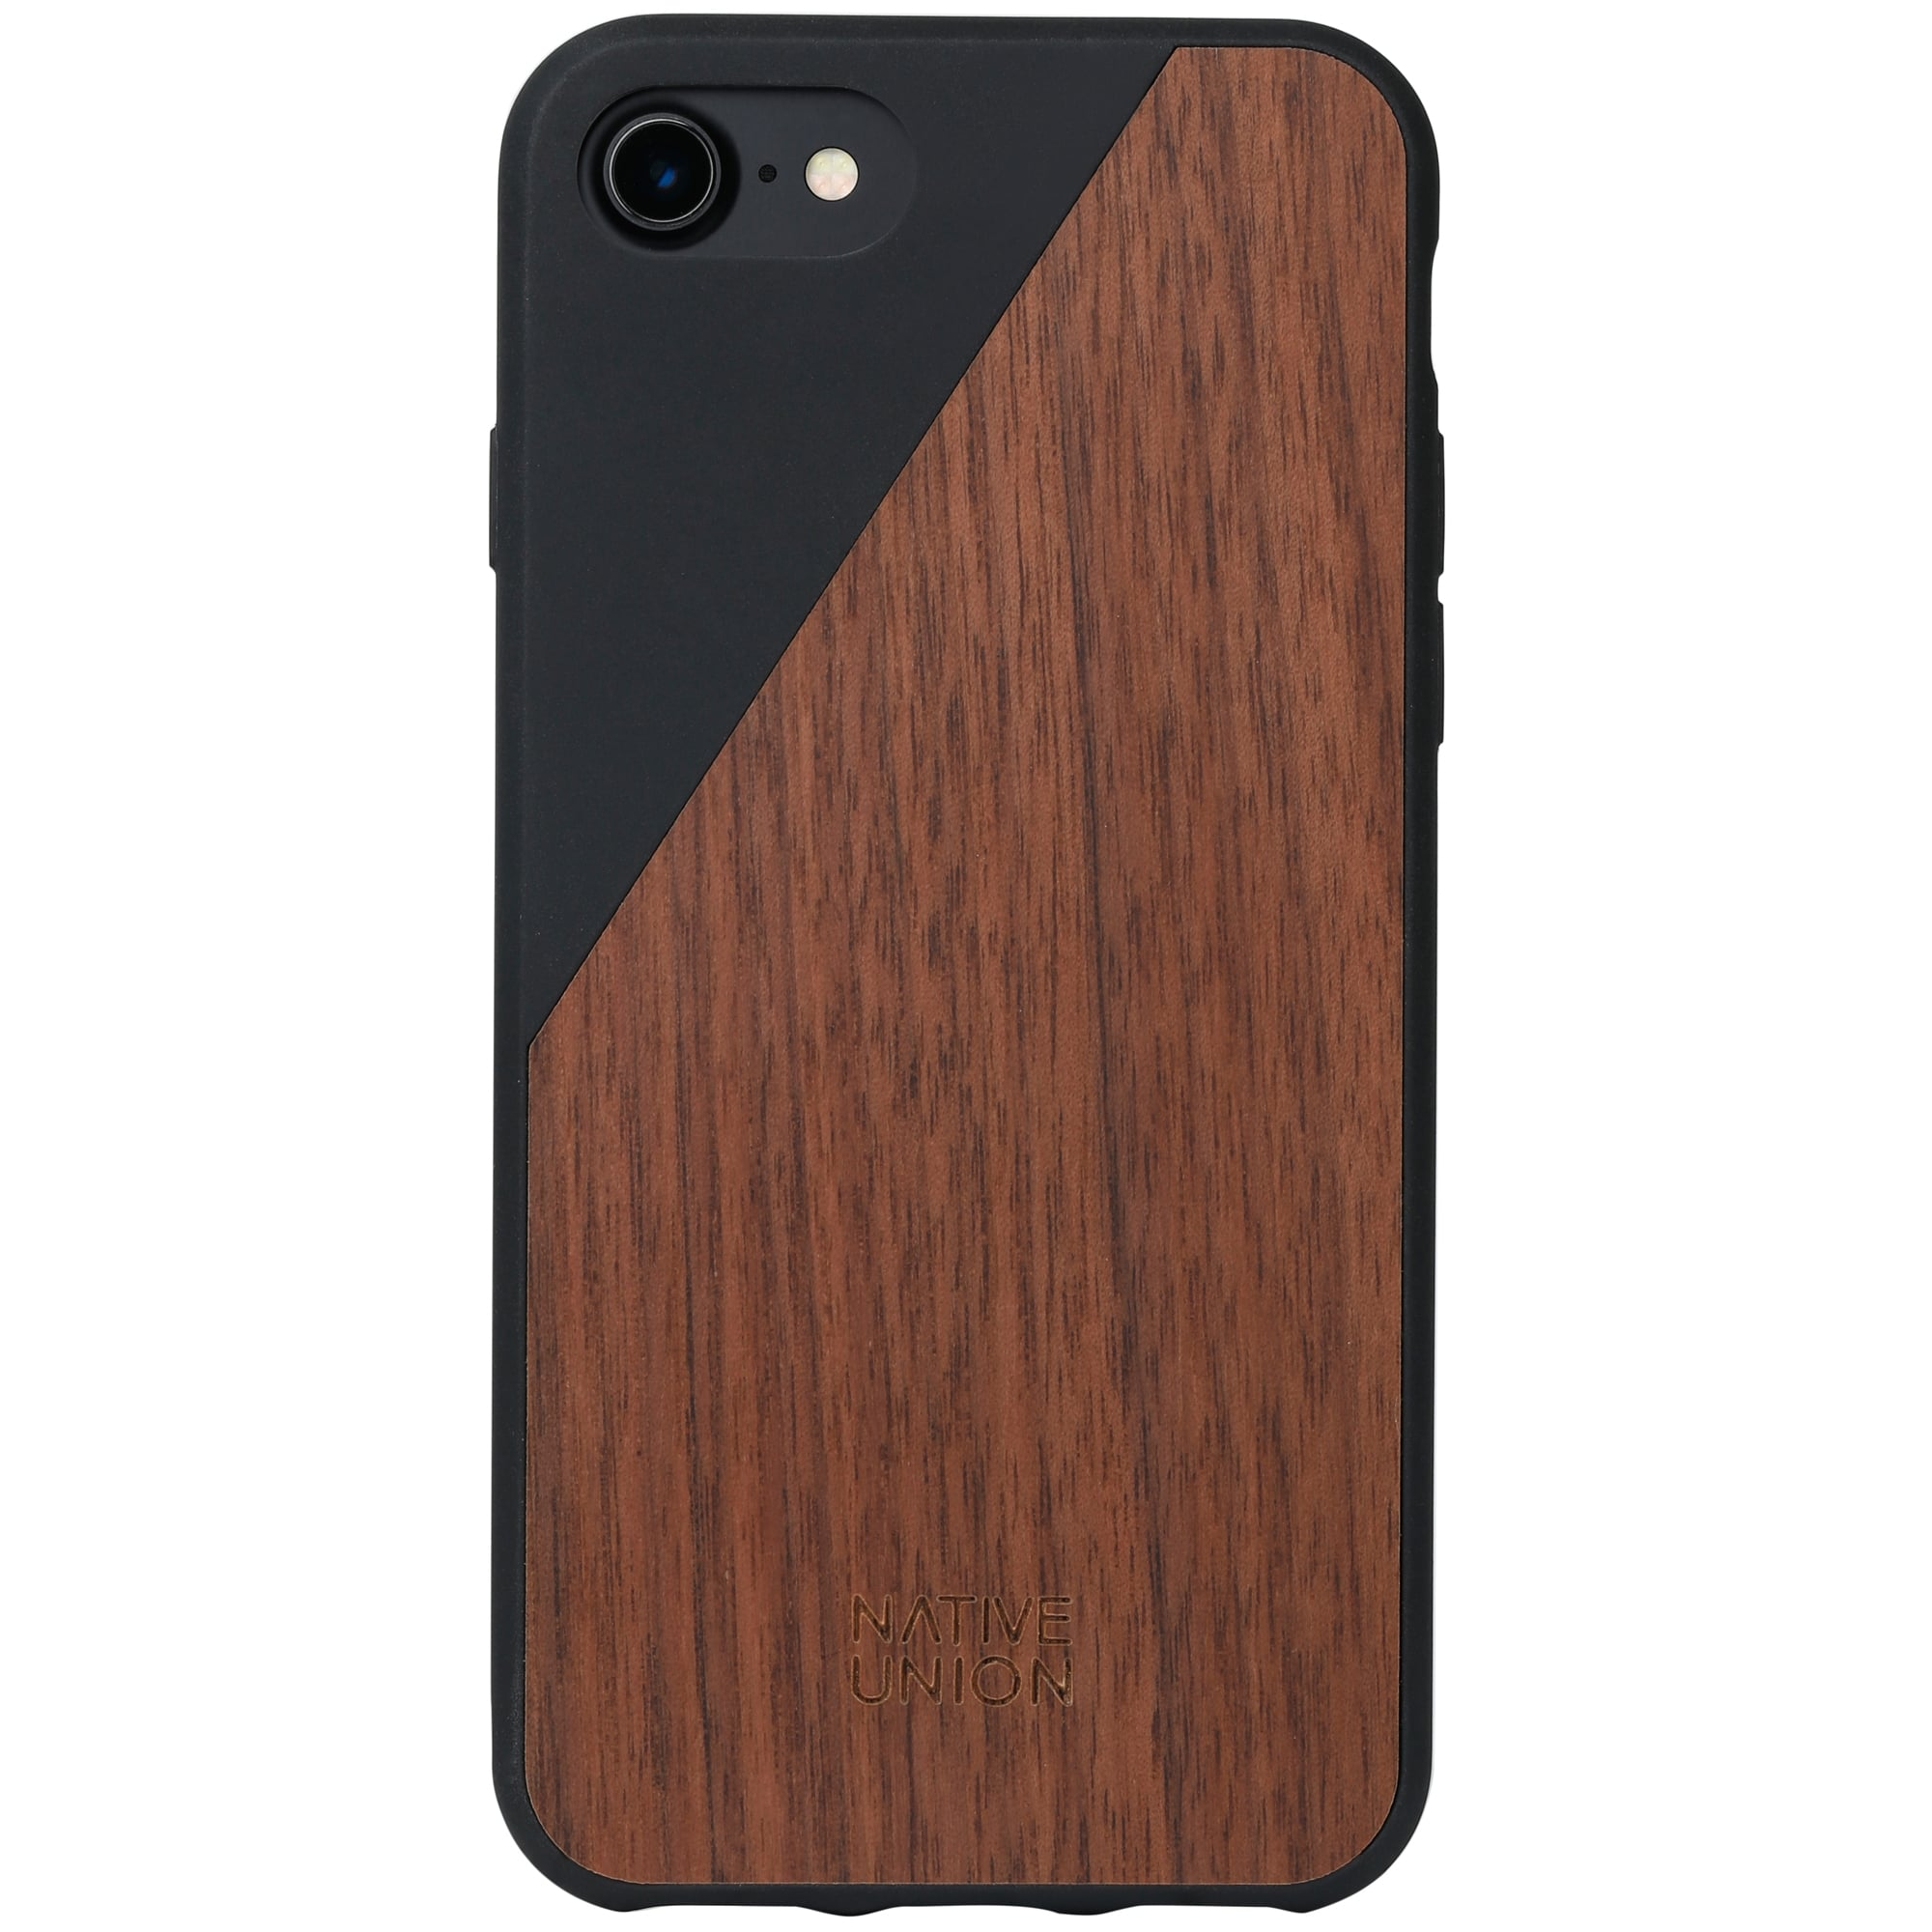 official photos 8af45 4936e Native Union Native Union CLIC Wooden for iPhone 7 & 8